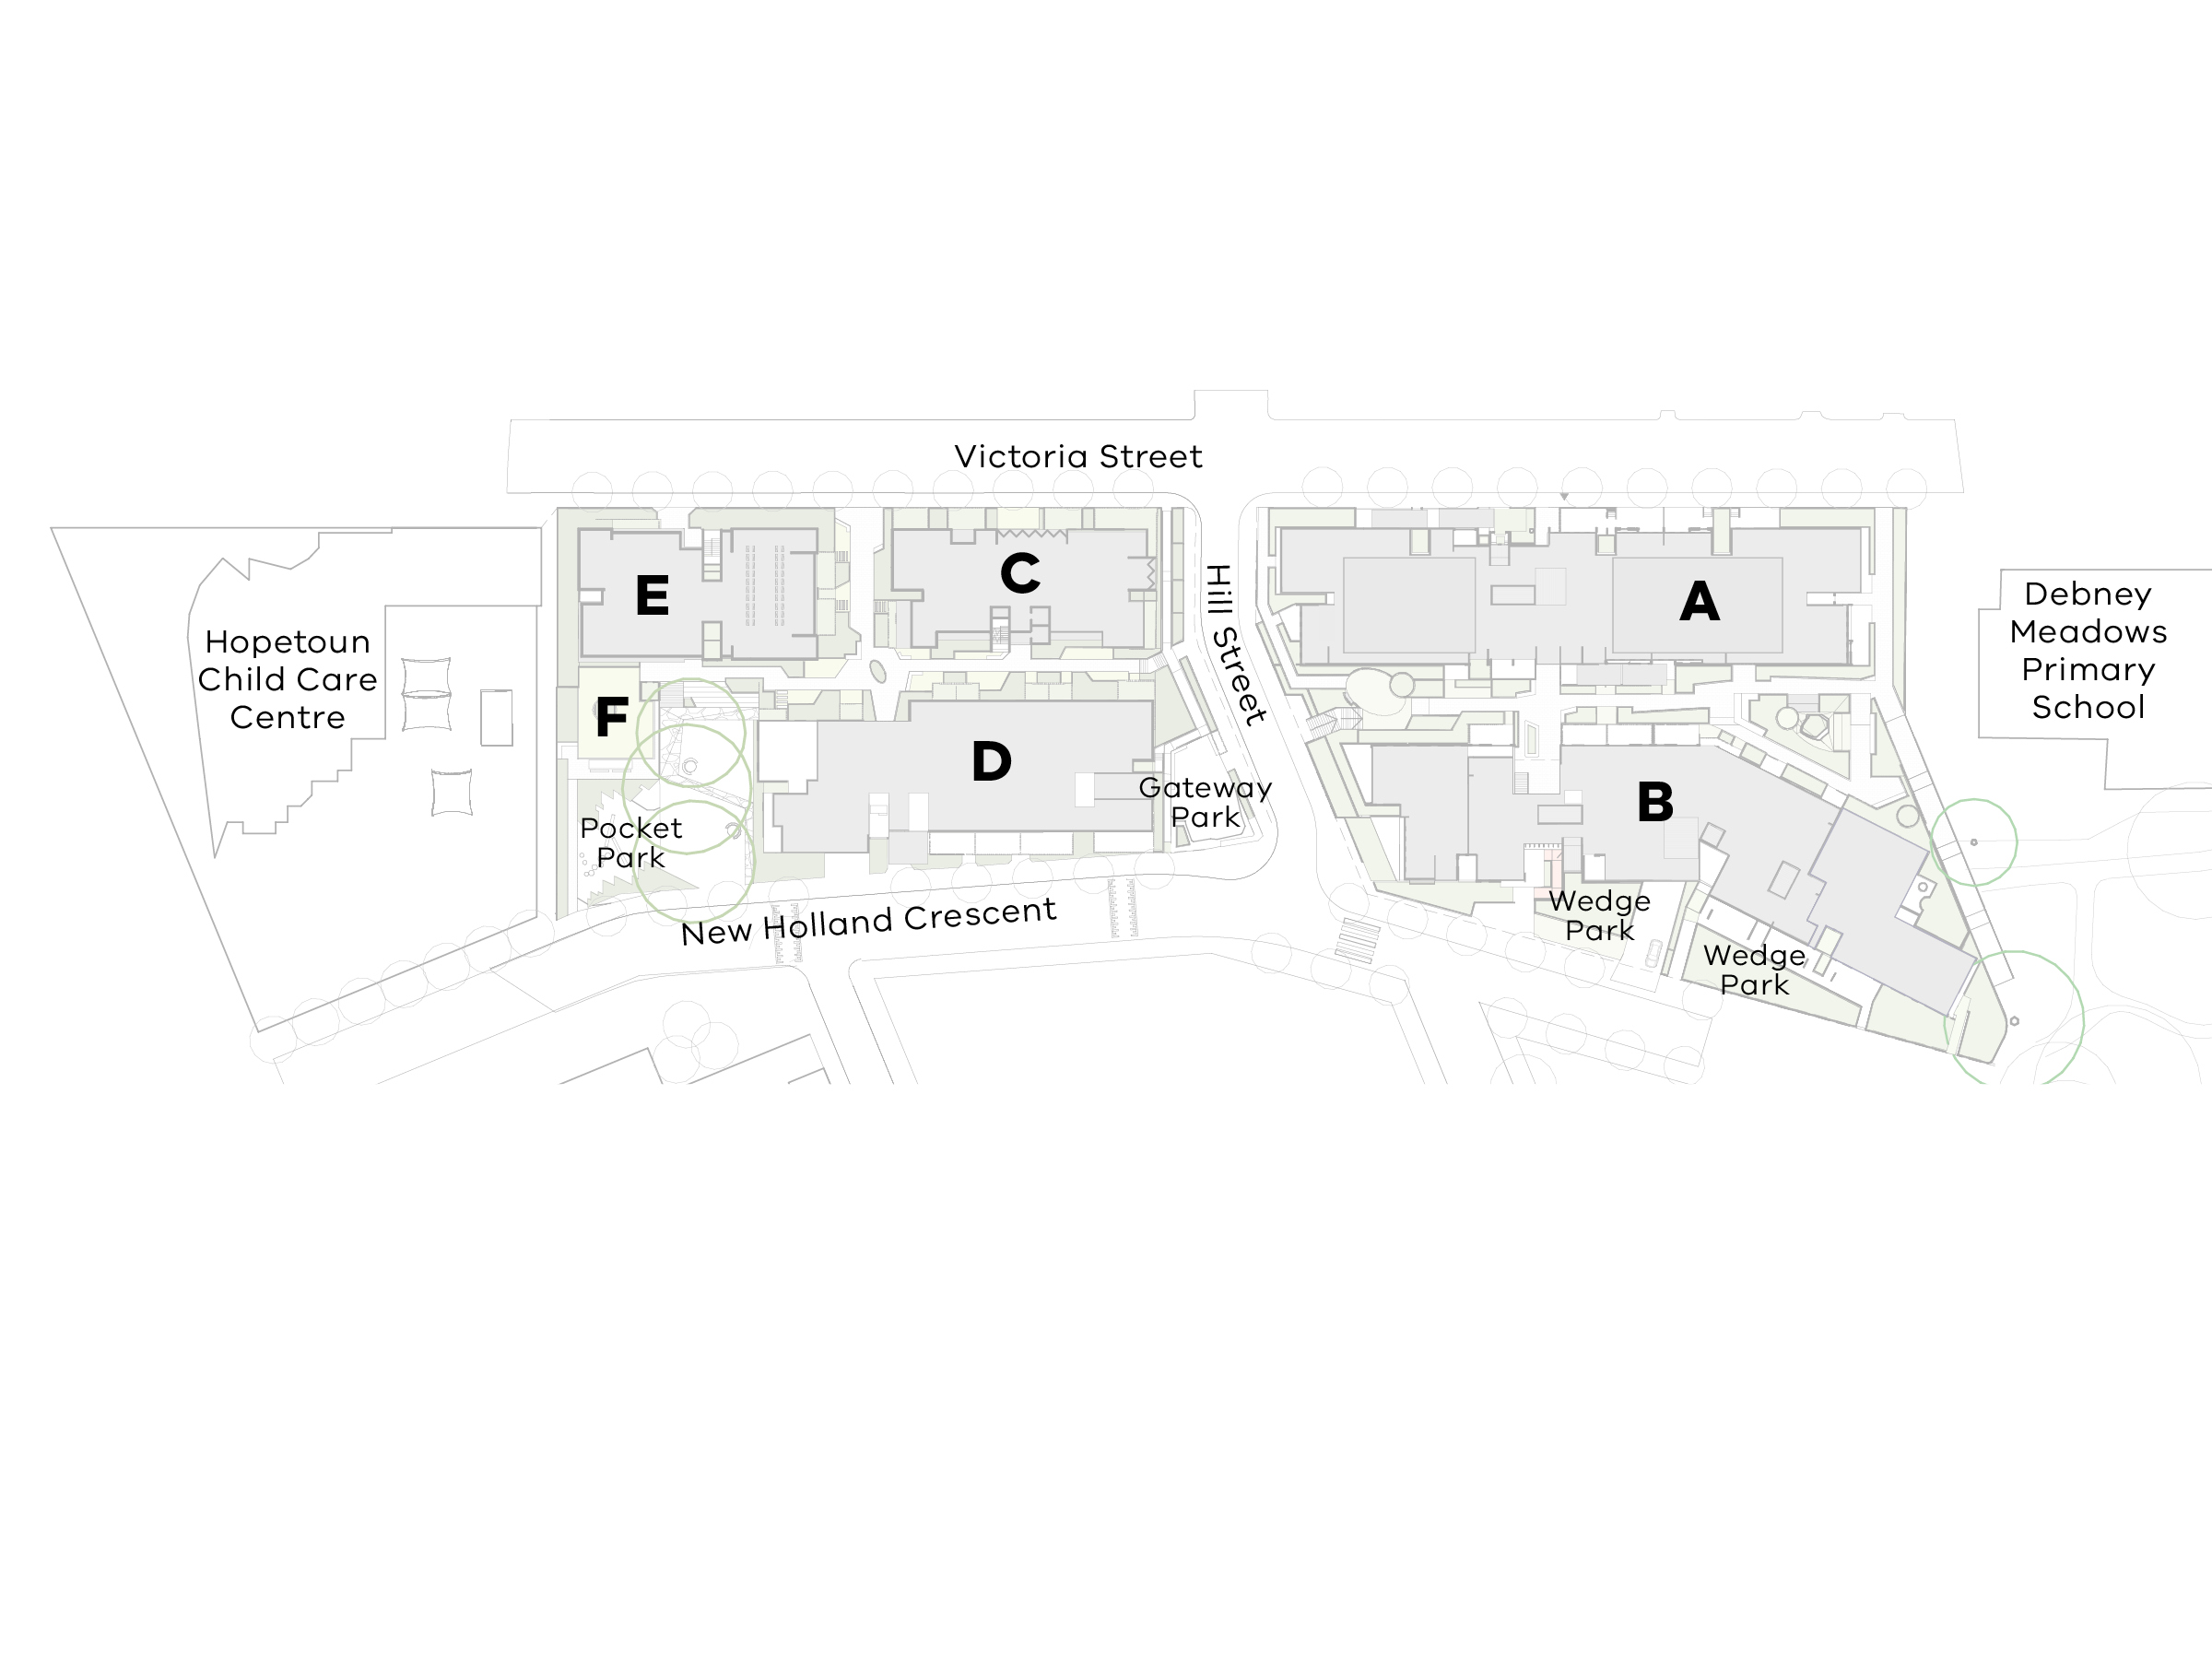 Site plan showing the new development in context with the existing environment. The south site of the development consists of buildings C, D, E and F. Buildings E and C are located on the Victoria Street side of the site between the Hopetoun Child Care Centre and Hill Street. Building F is located between building E and the pocket park on New Holland Crescent. Building D is located between the pocket park and gateway park along New Holland Crescent. The north site of the development consists of buildings A and B and is located between Hill Street and Debney Meadows Primary School. Building A is located on the Victoria Street side. Building B is located on the New Holland Crescent side with 2 wedge parks along between the building and the street.